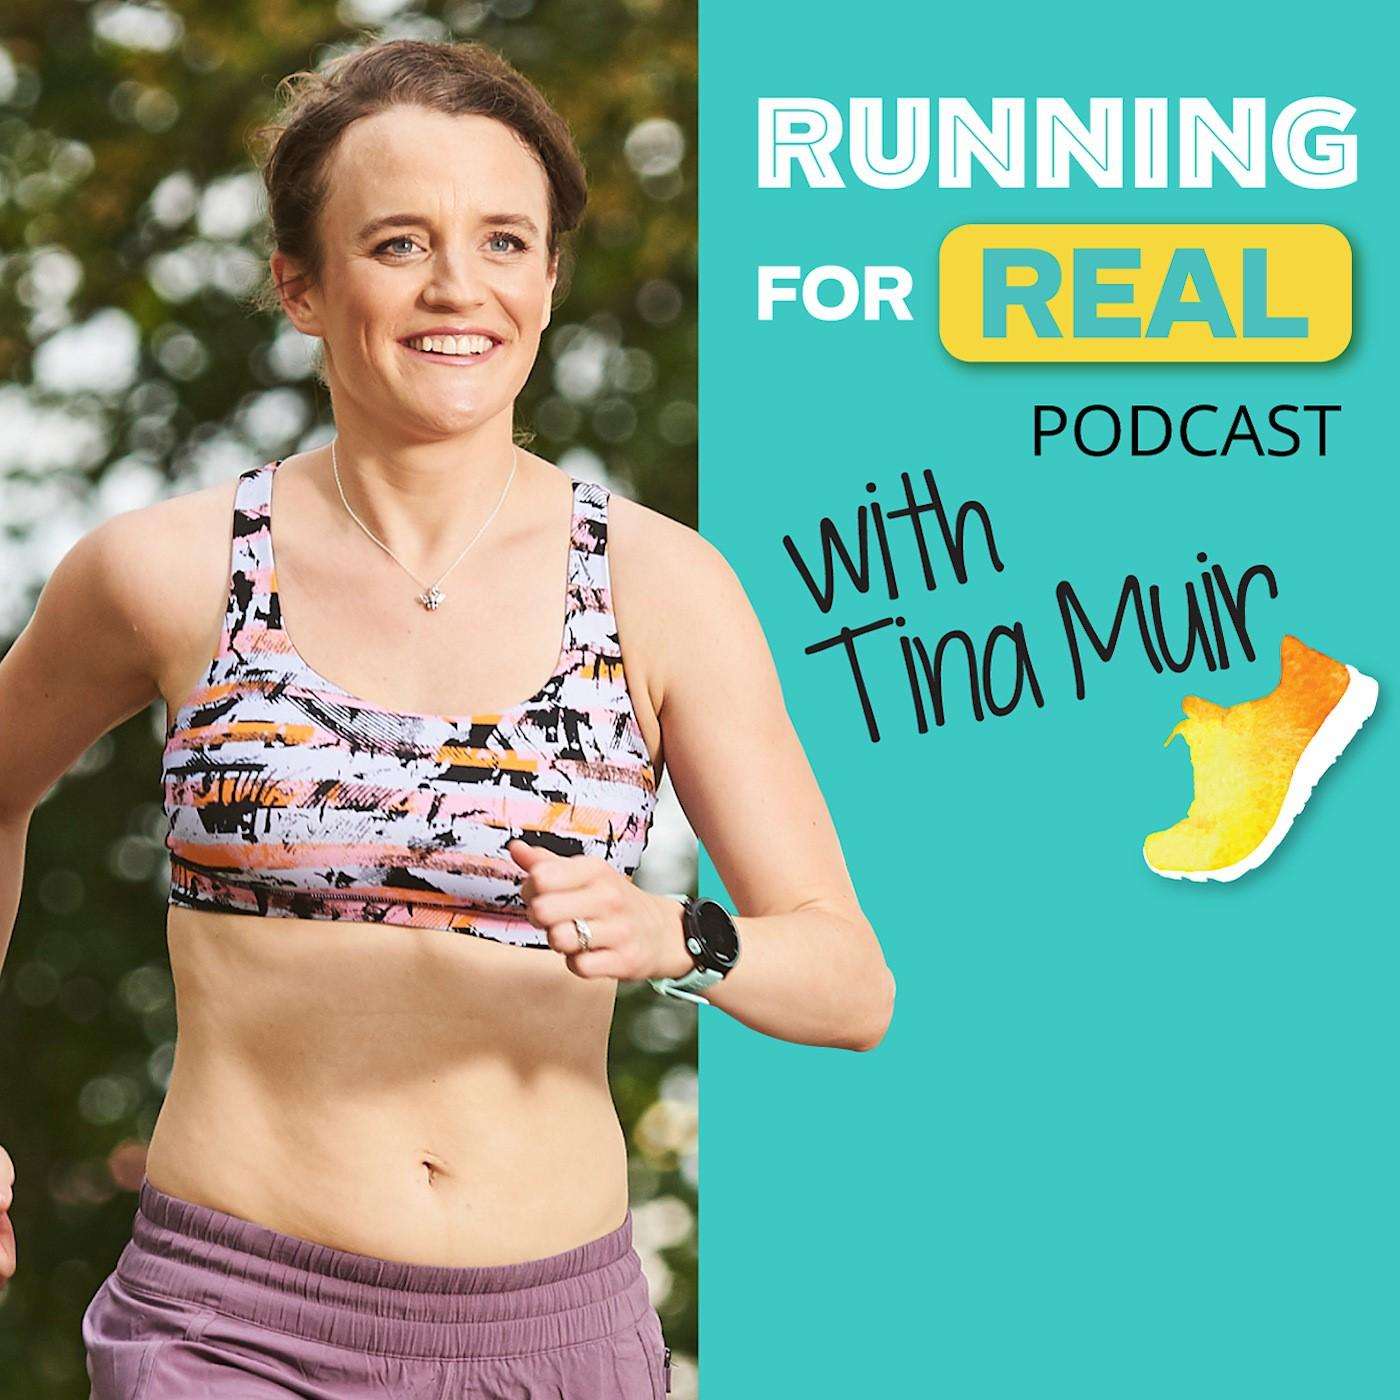 Steve Picucci: Running Is One Piece Of The Puzzle -R4R 125